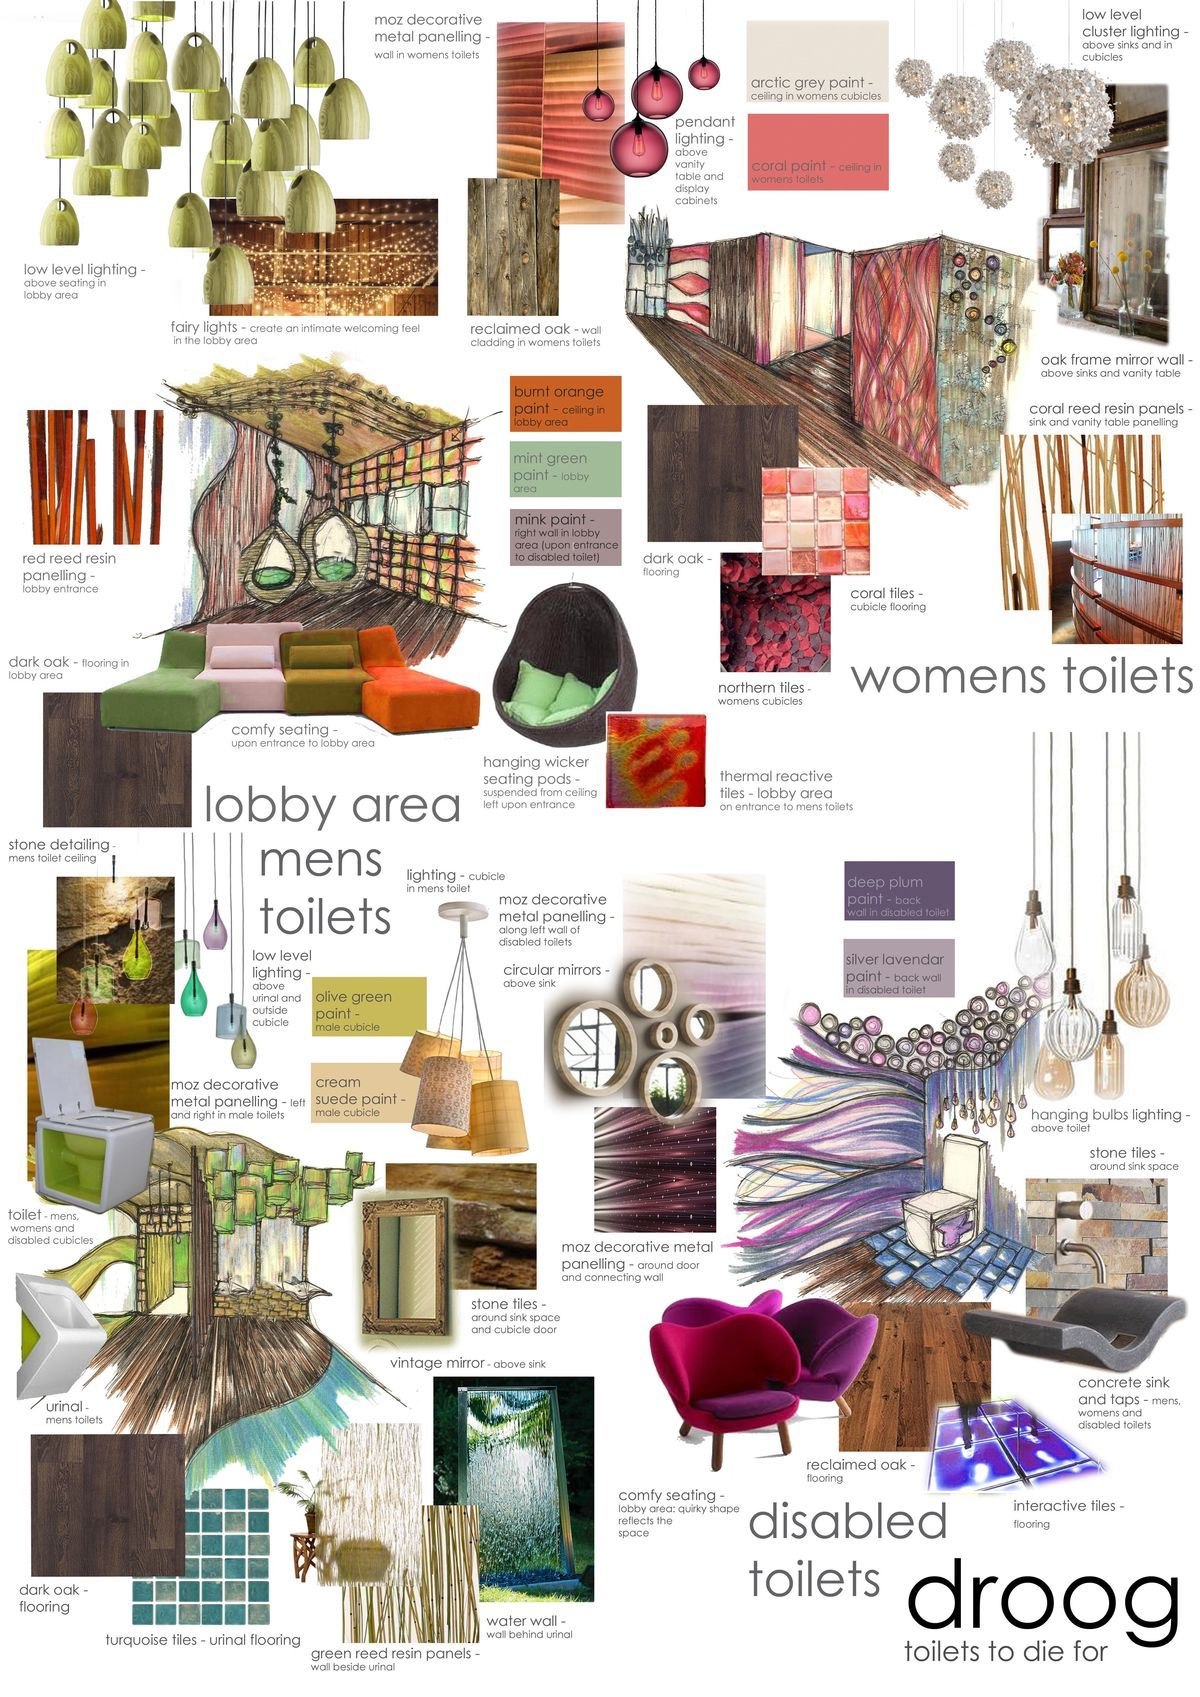 Pin by emma davis on for design students interior design - Interior design presentation layout ...